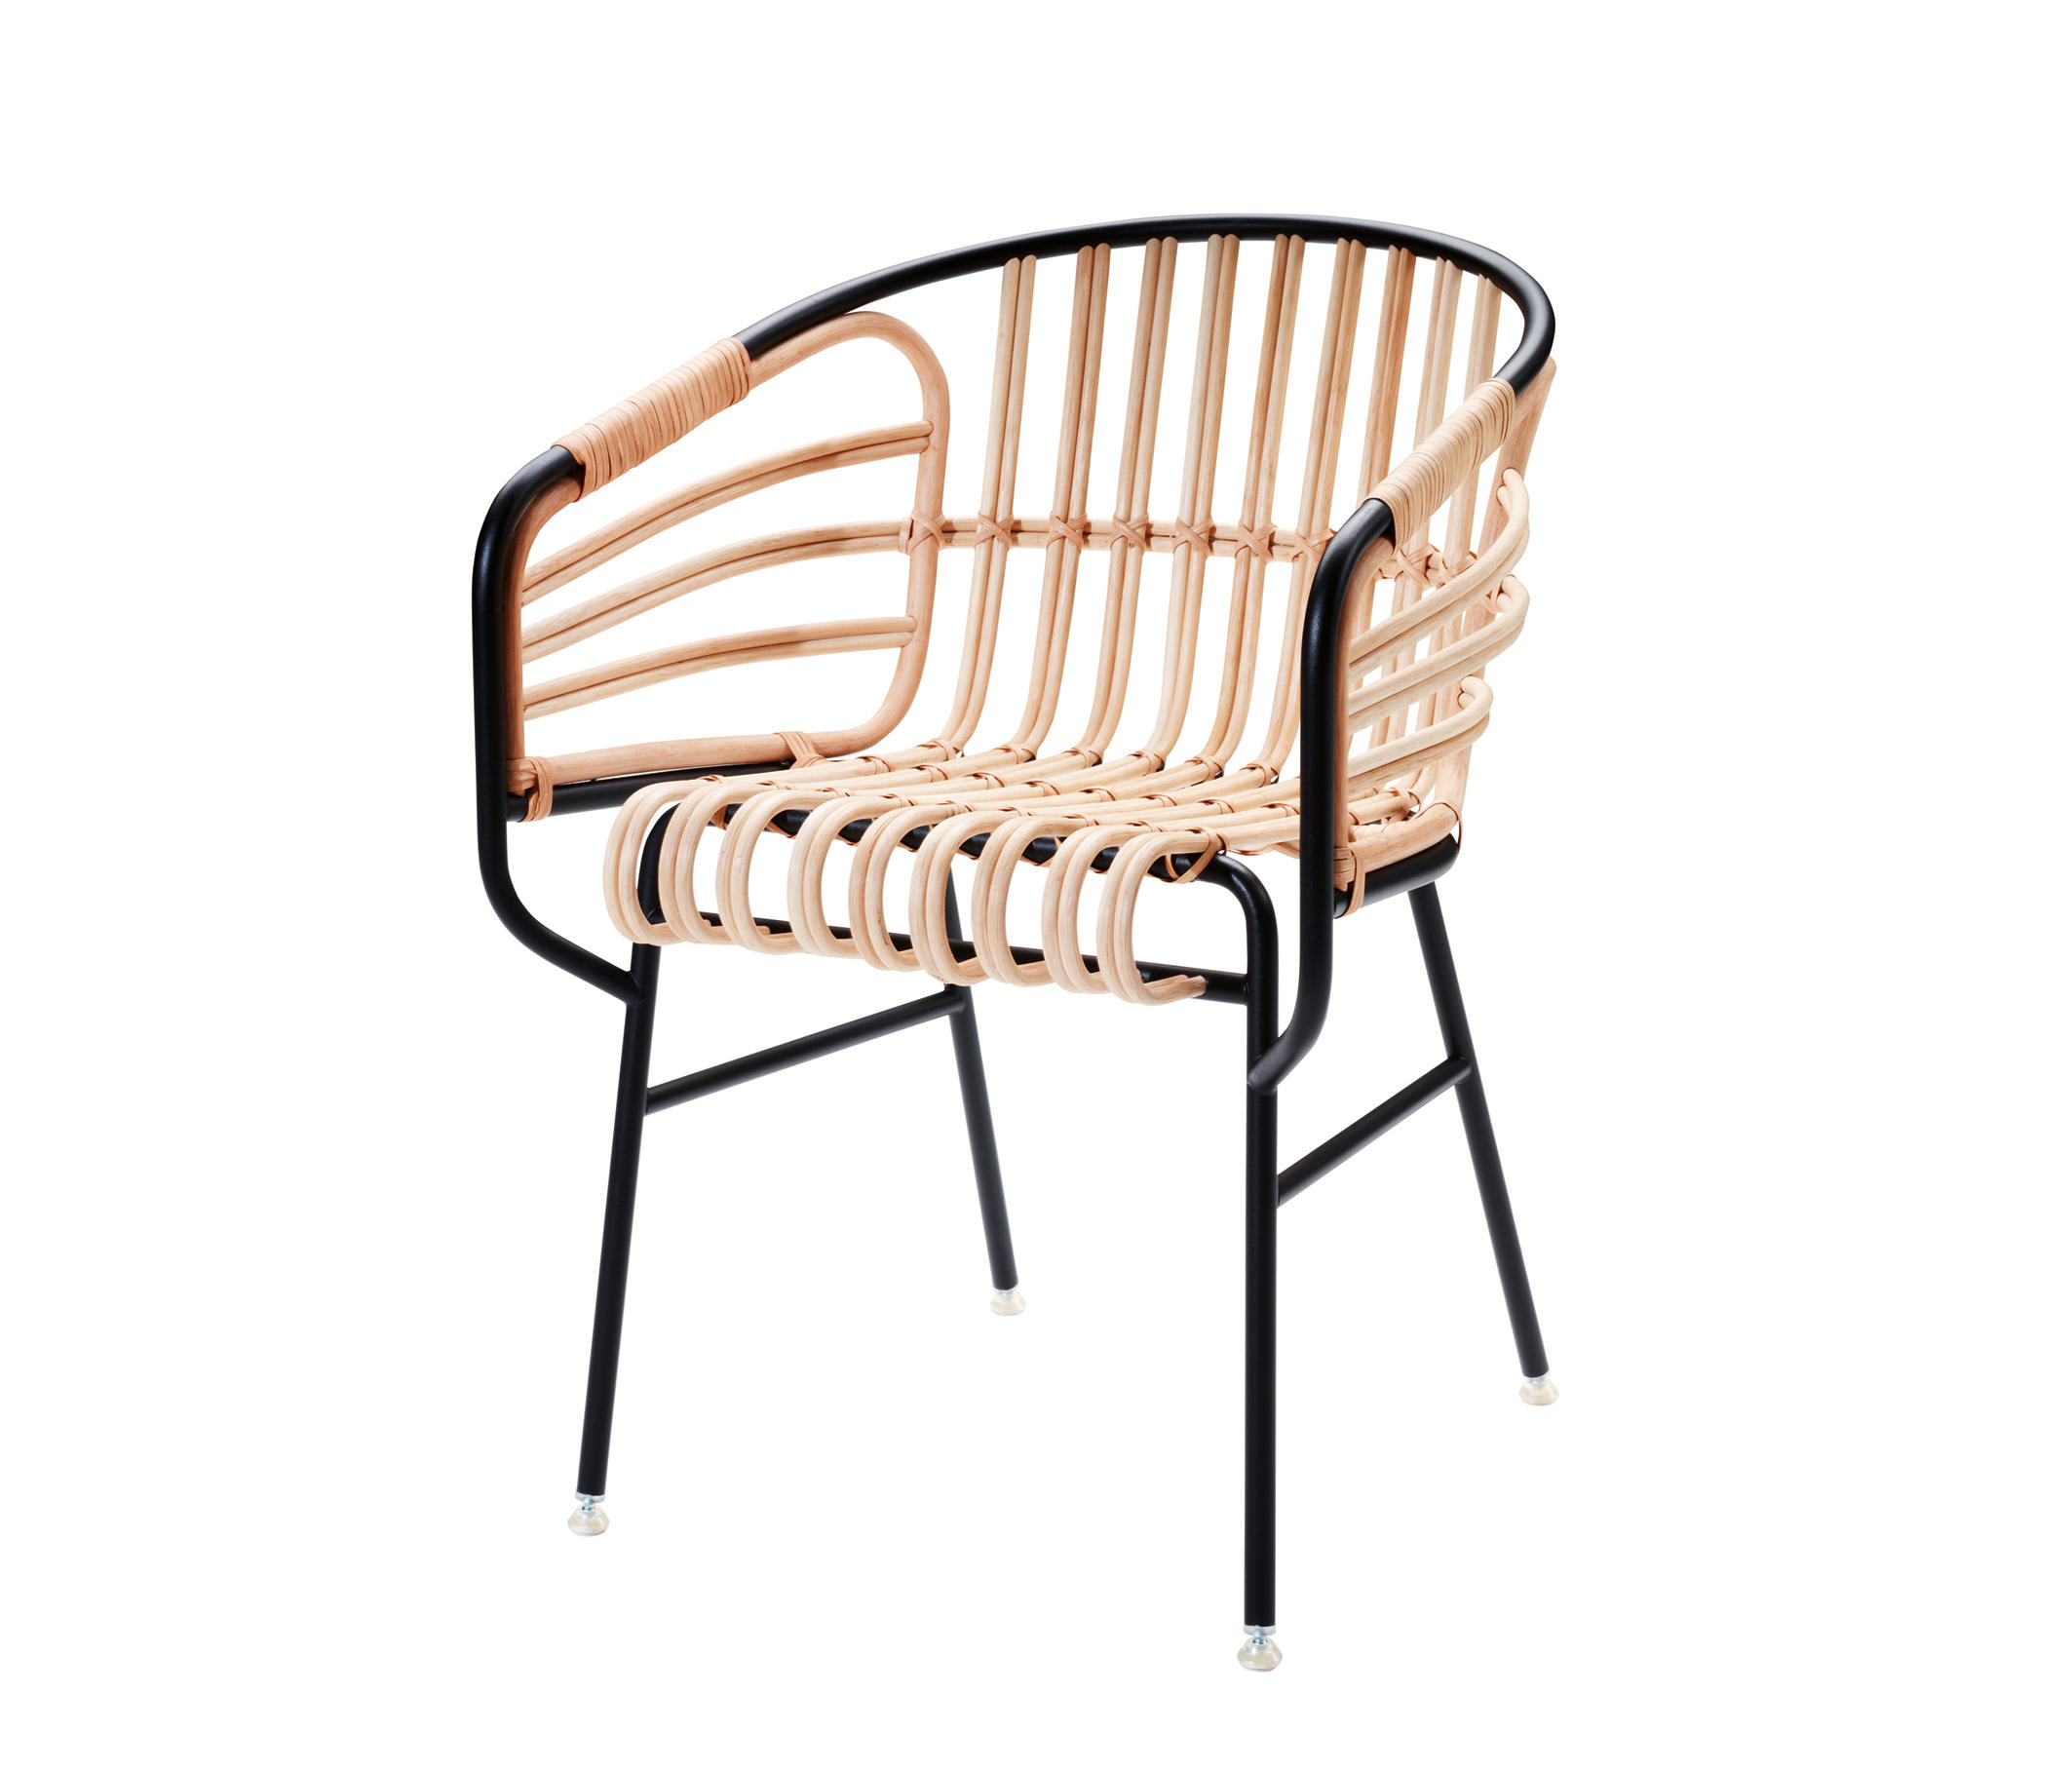 Sillas De Rafia Raphia Restaurant Chairs From Casamania Horm It Architonic